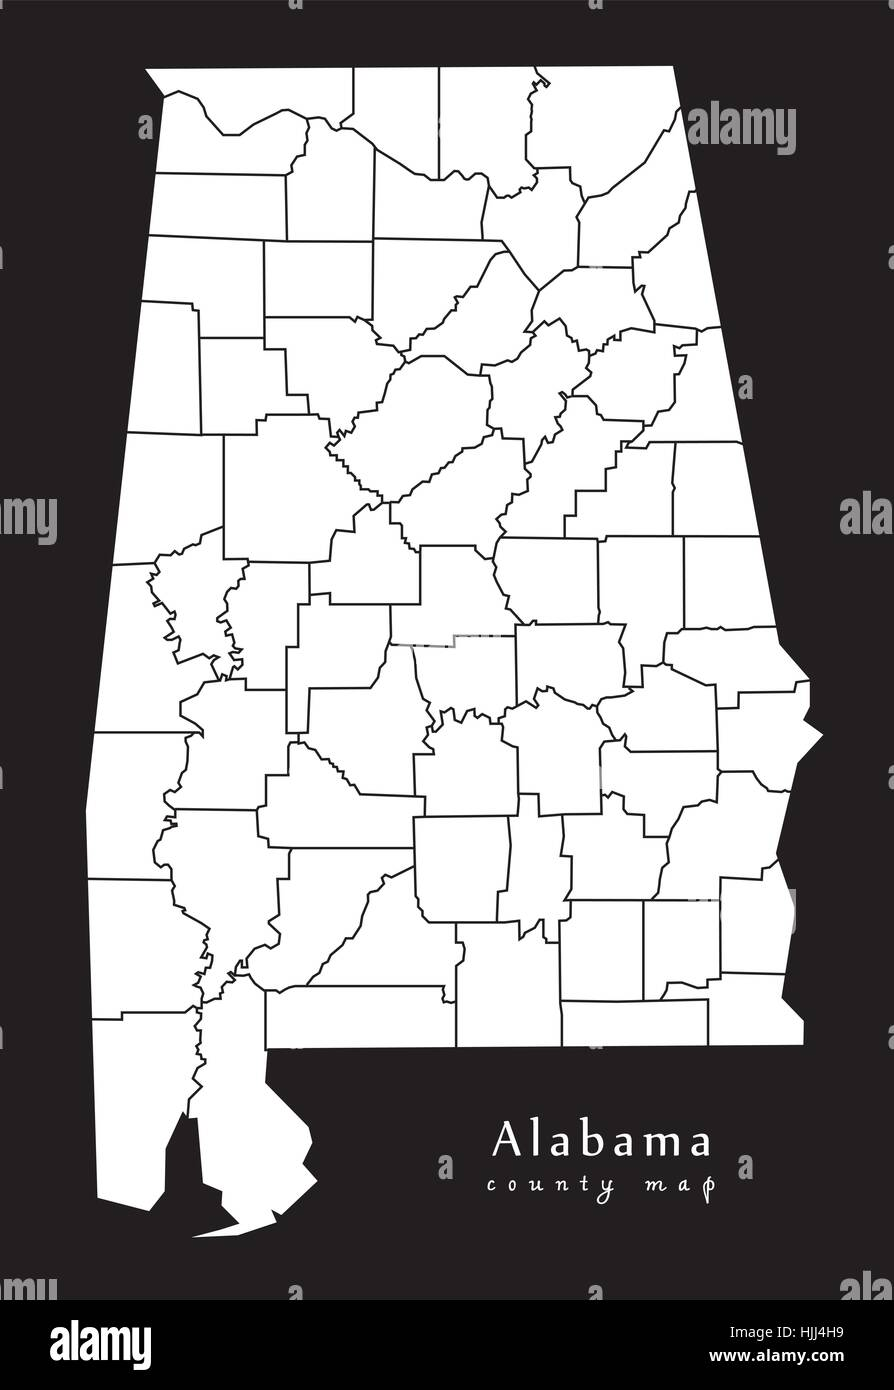 modern map alabama county map usa black and white silhouette illustration